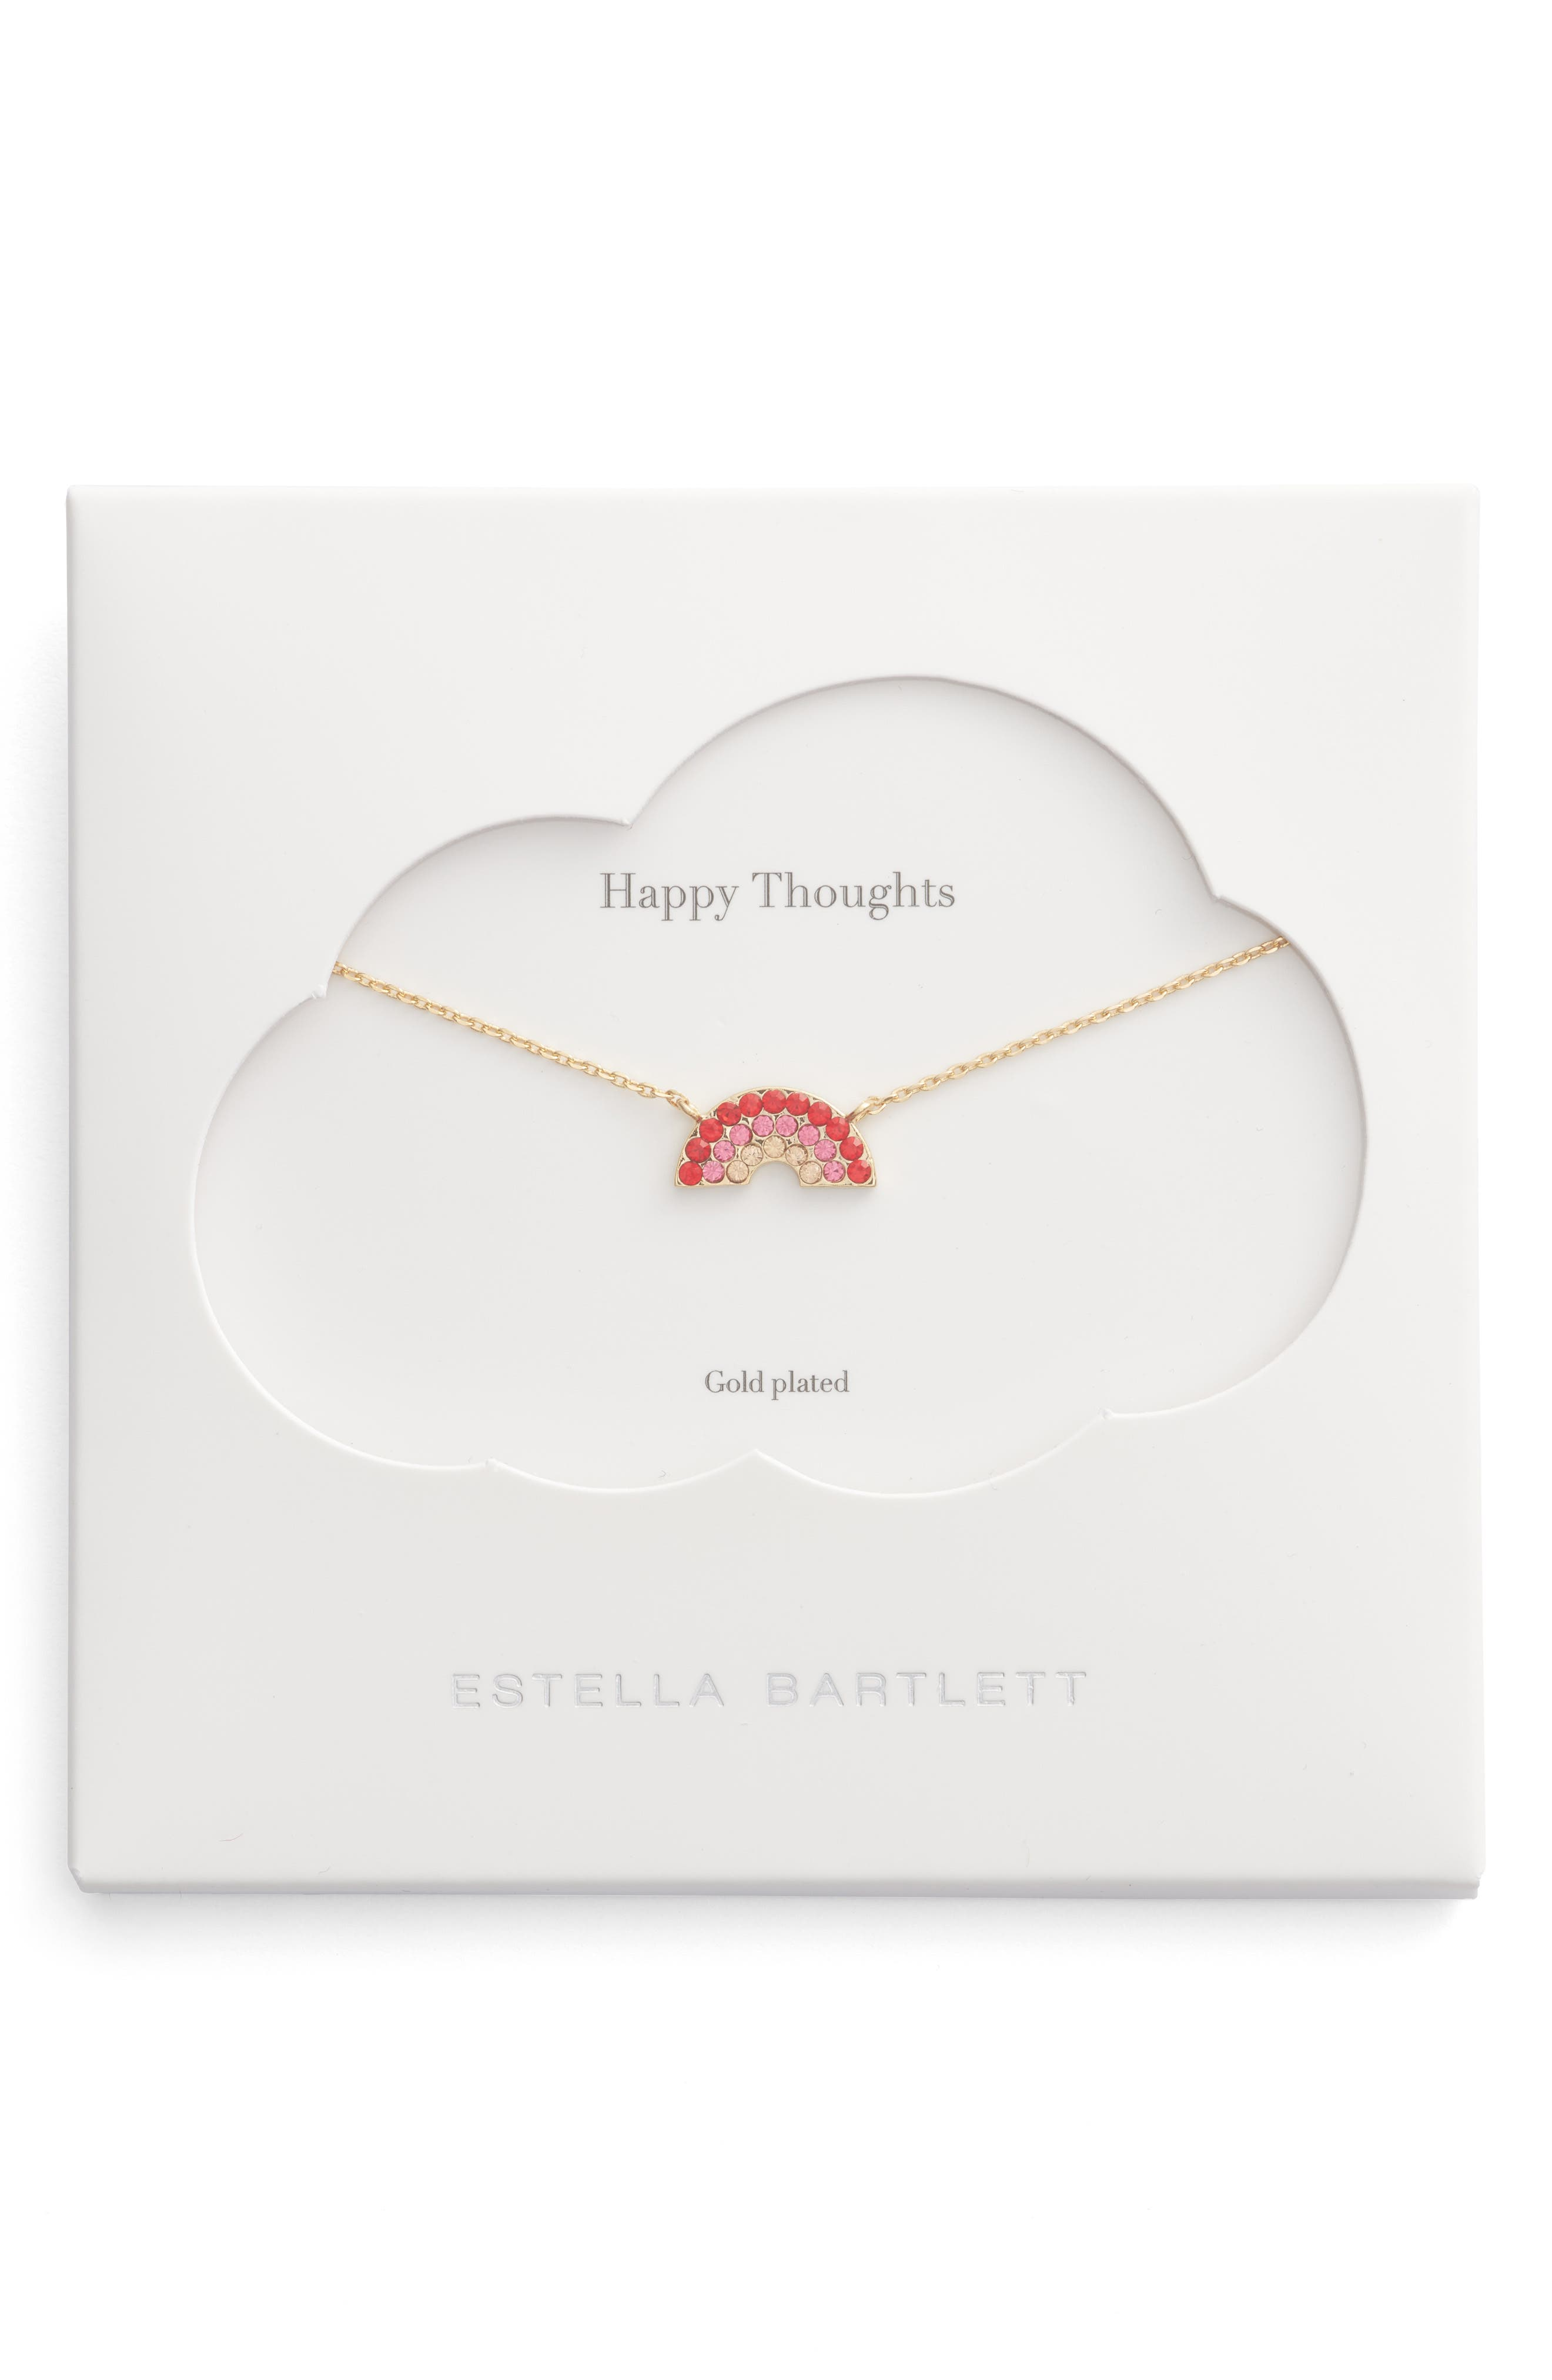 Happy Thoughts Rainbow Necklace,                             Main thumbnail 1, color,                             710